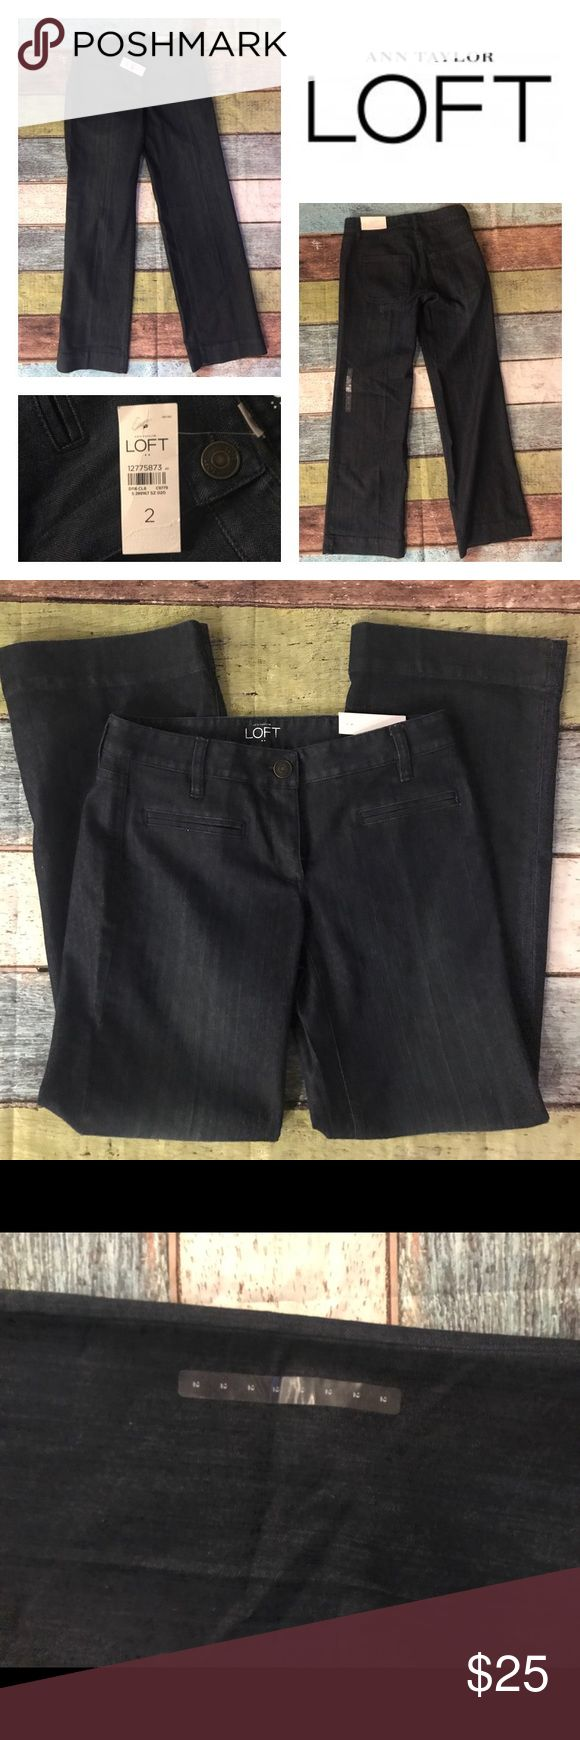 """Ann Taylor LOFT Curvy Trouser Fit Jeans Sz 2 NEW!! Ann Taylor LOFT Women's Jeans Curvy Trouser Fit Curved Through Hip & Thigh Dark Wash Sz 2 85% Cotton / 14% Polyester / 1% Spandex  All Measurements Done With Item Laying Flat: Waist: 15"""" Hips: 17"""" Rise: 8"""" Inseam: 32.5"""" LOFT Jeans"""